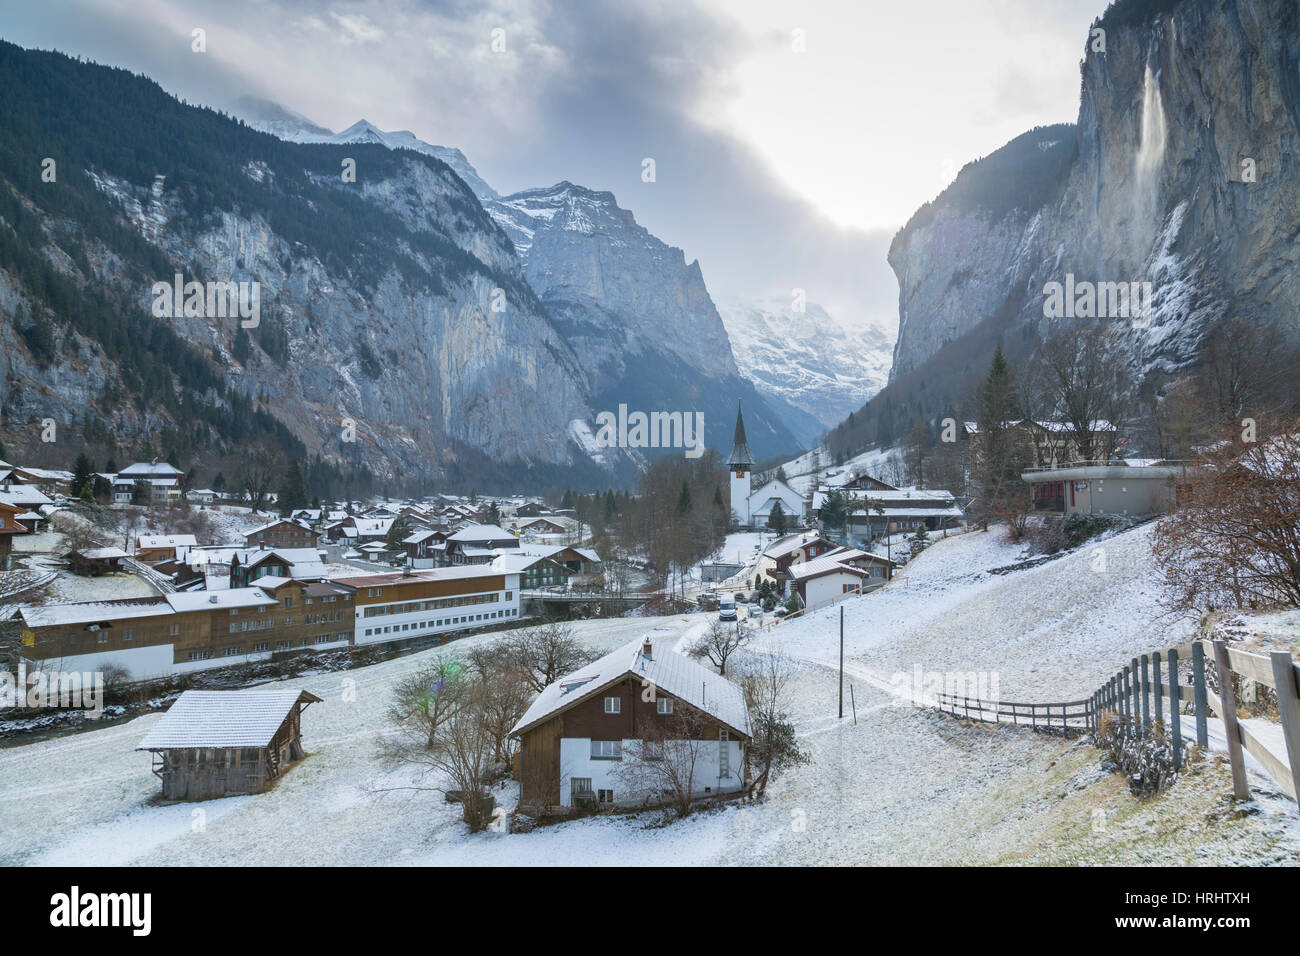 Church at Lauterbrunnen, Jungfrau region, Bernese Oberland, Swiss Alps, Switzerland Stock Photo